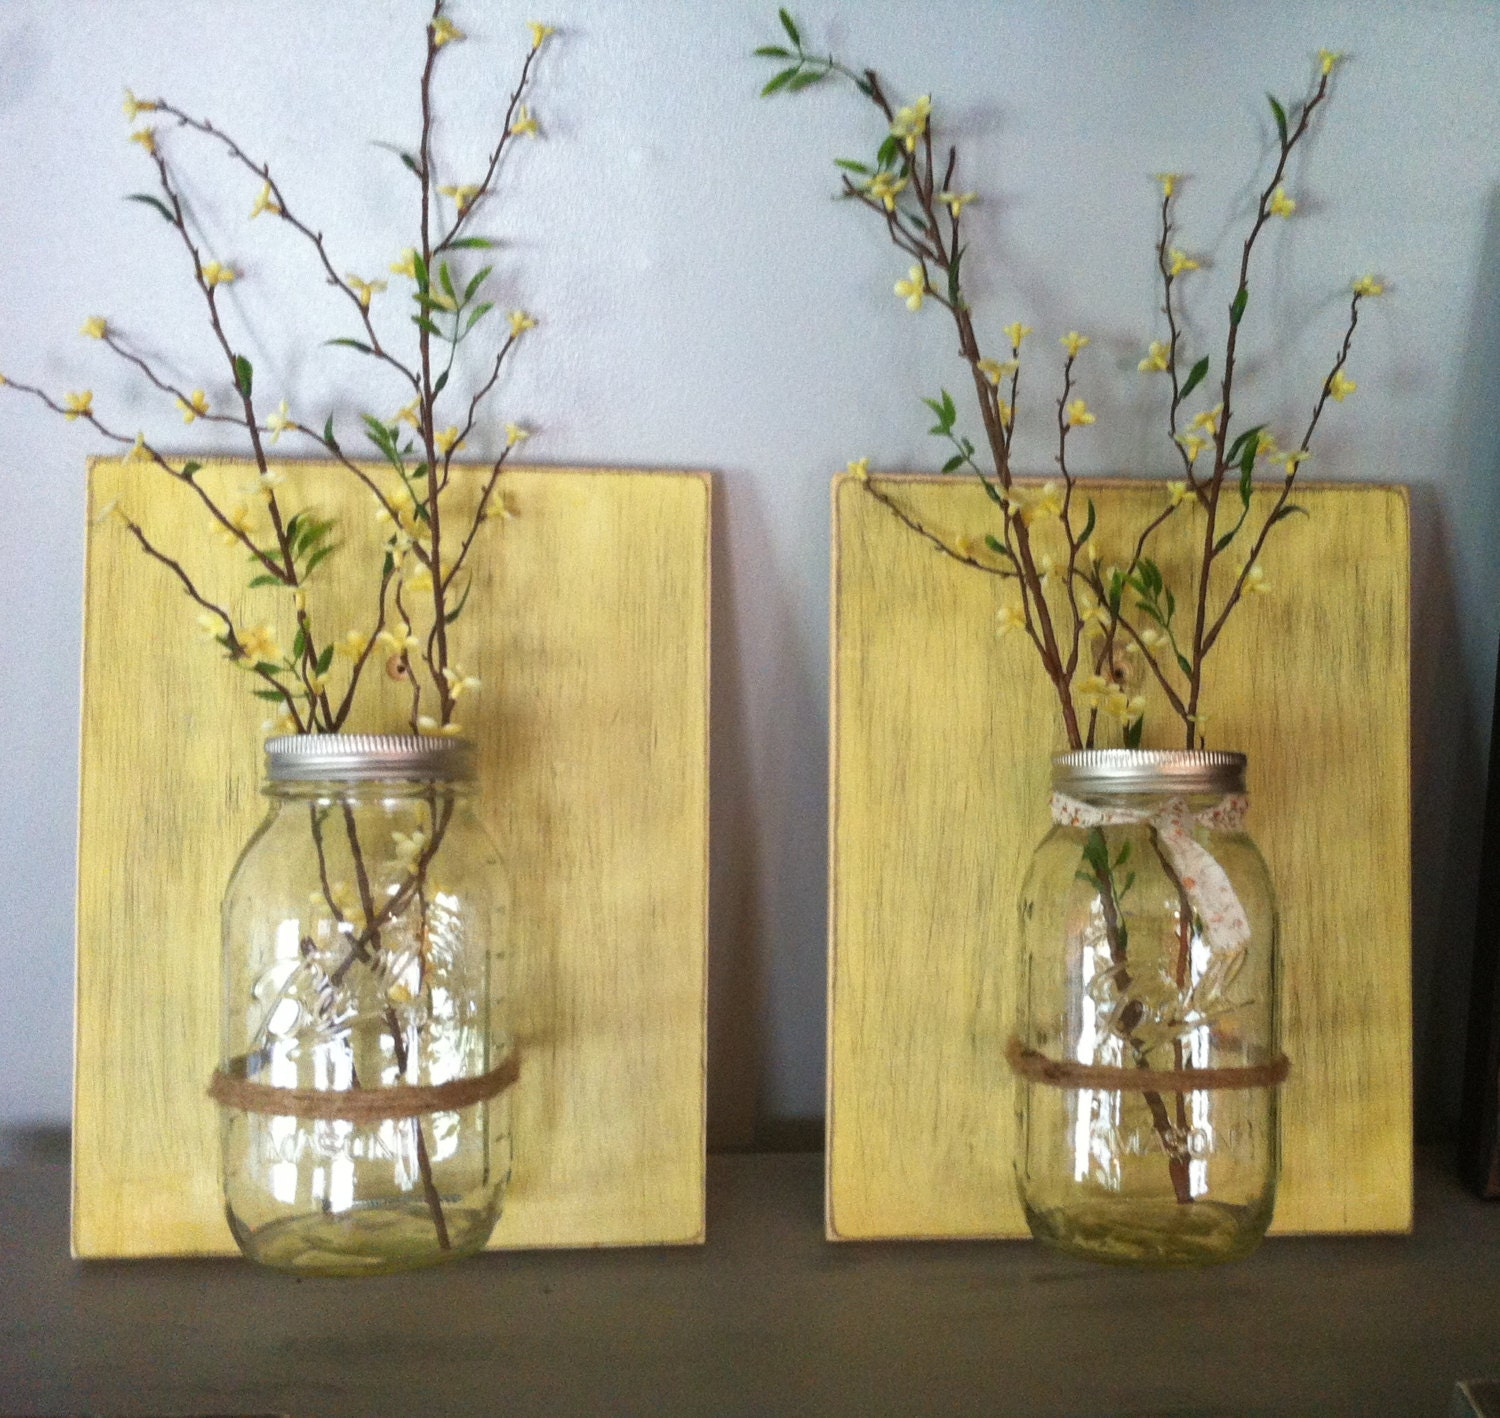 Wall Decor With Mason Jars : Mason jar wall decor hanging vase rustic